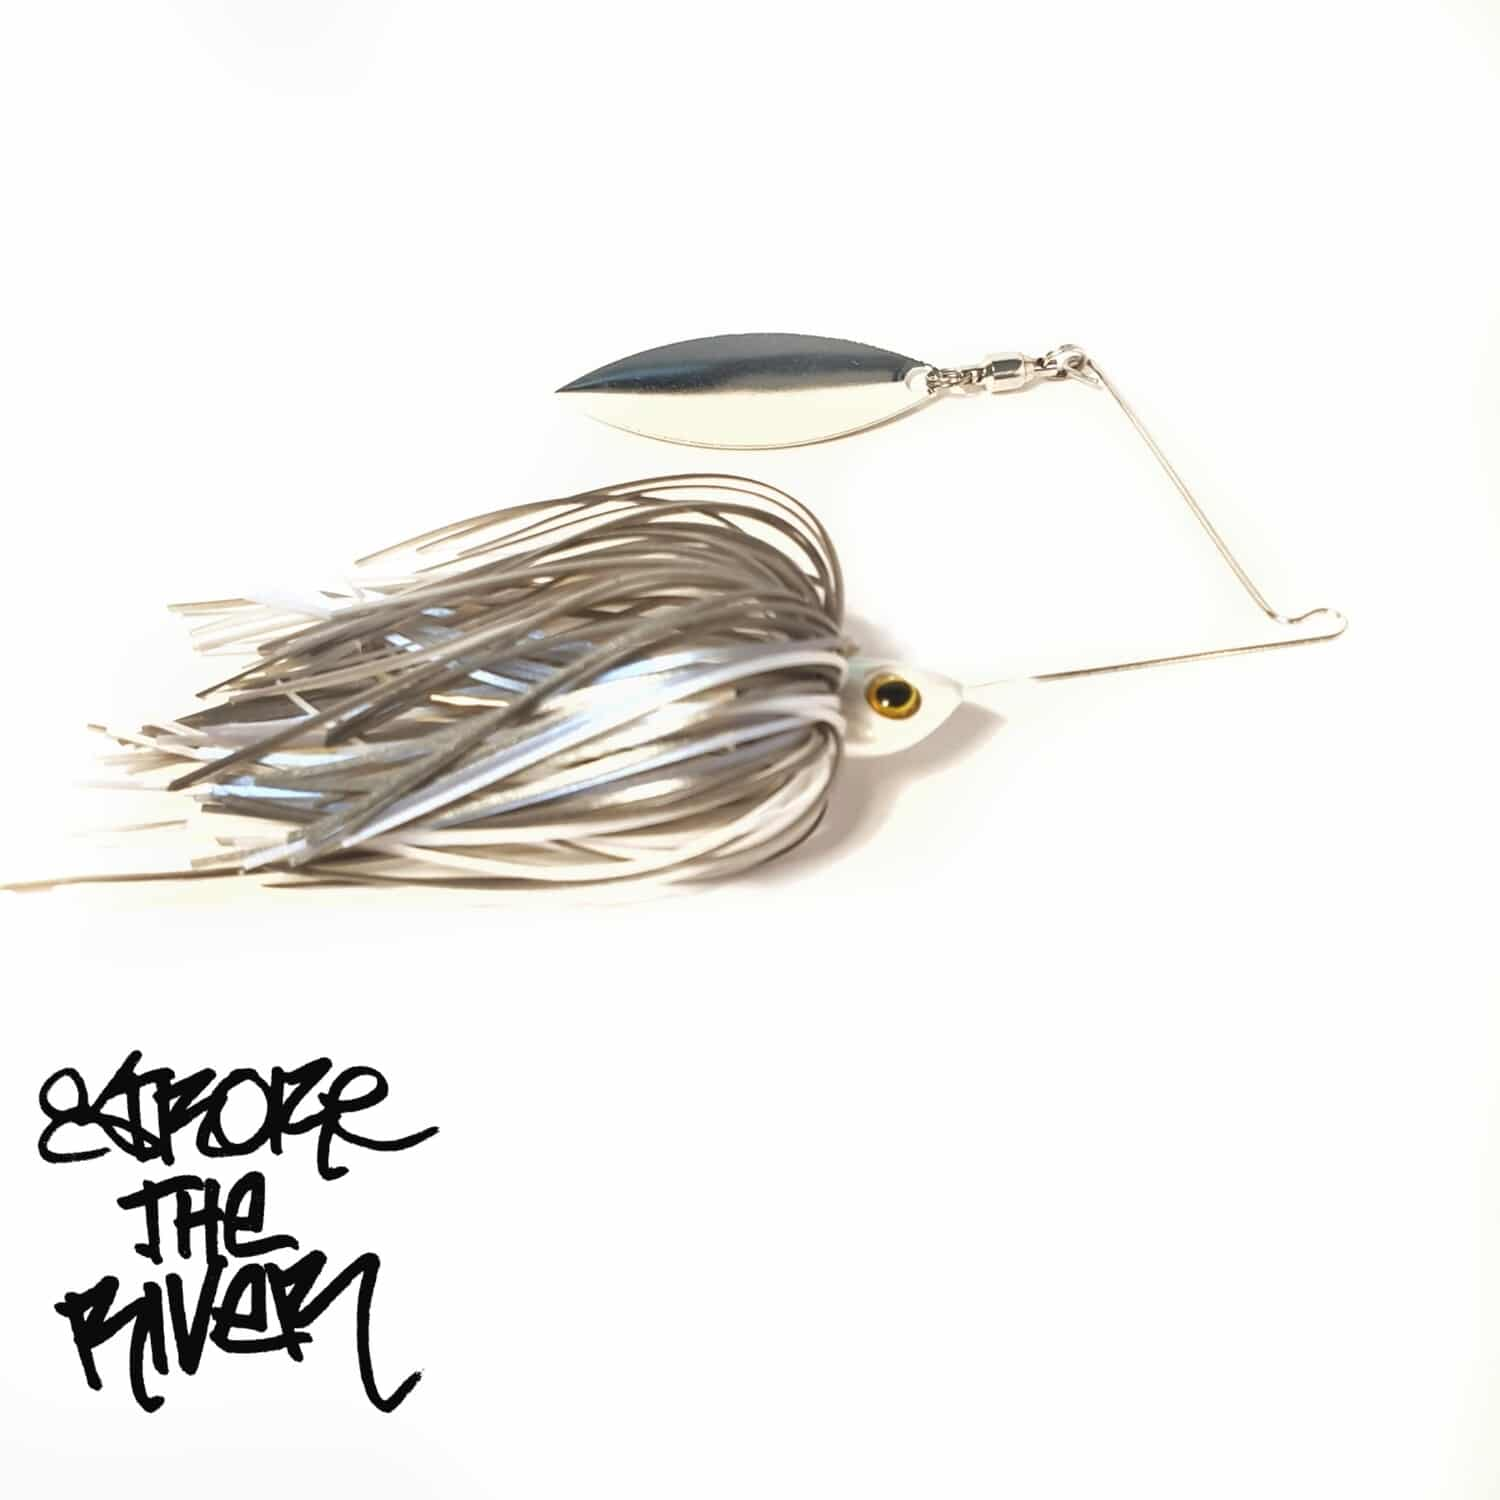 crankys leurre spinnerbait stroke the river spin minnow pêche fishing